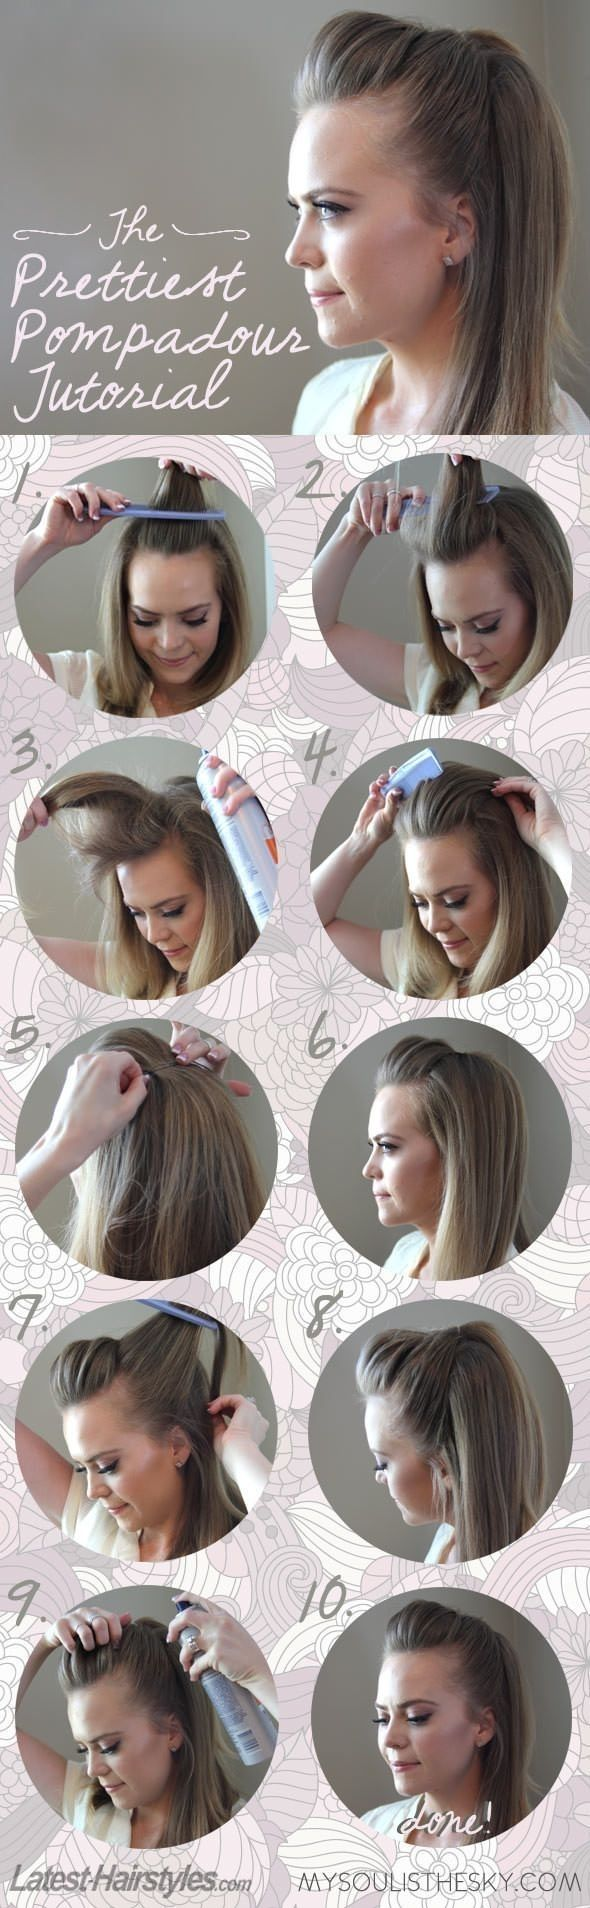 The Easiest, Prettiest Pompadour